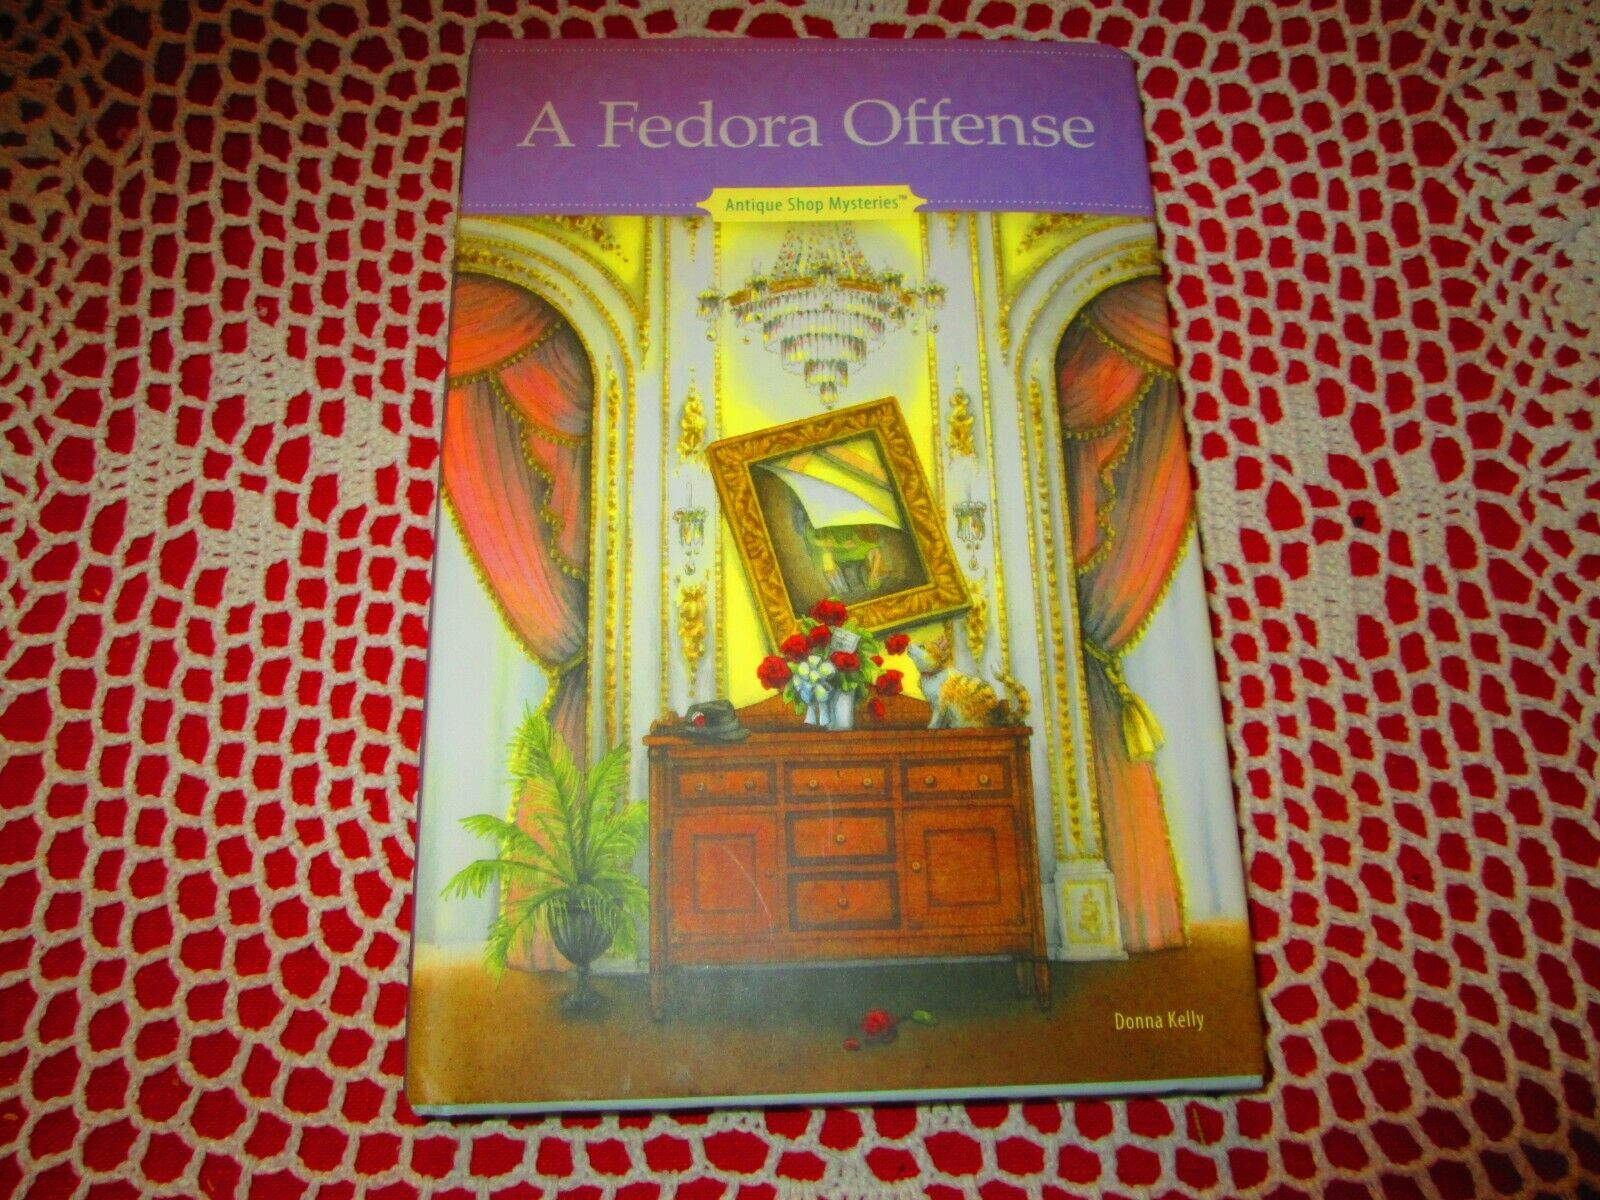 A FEDORA OFFENSE Antique Shop Mysteries DONNA KELLY - $9.99